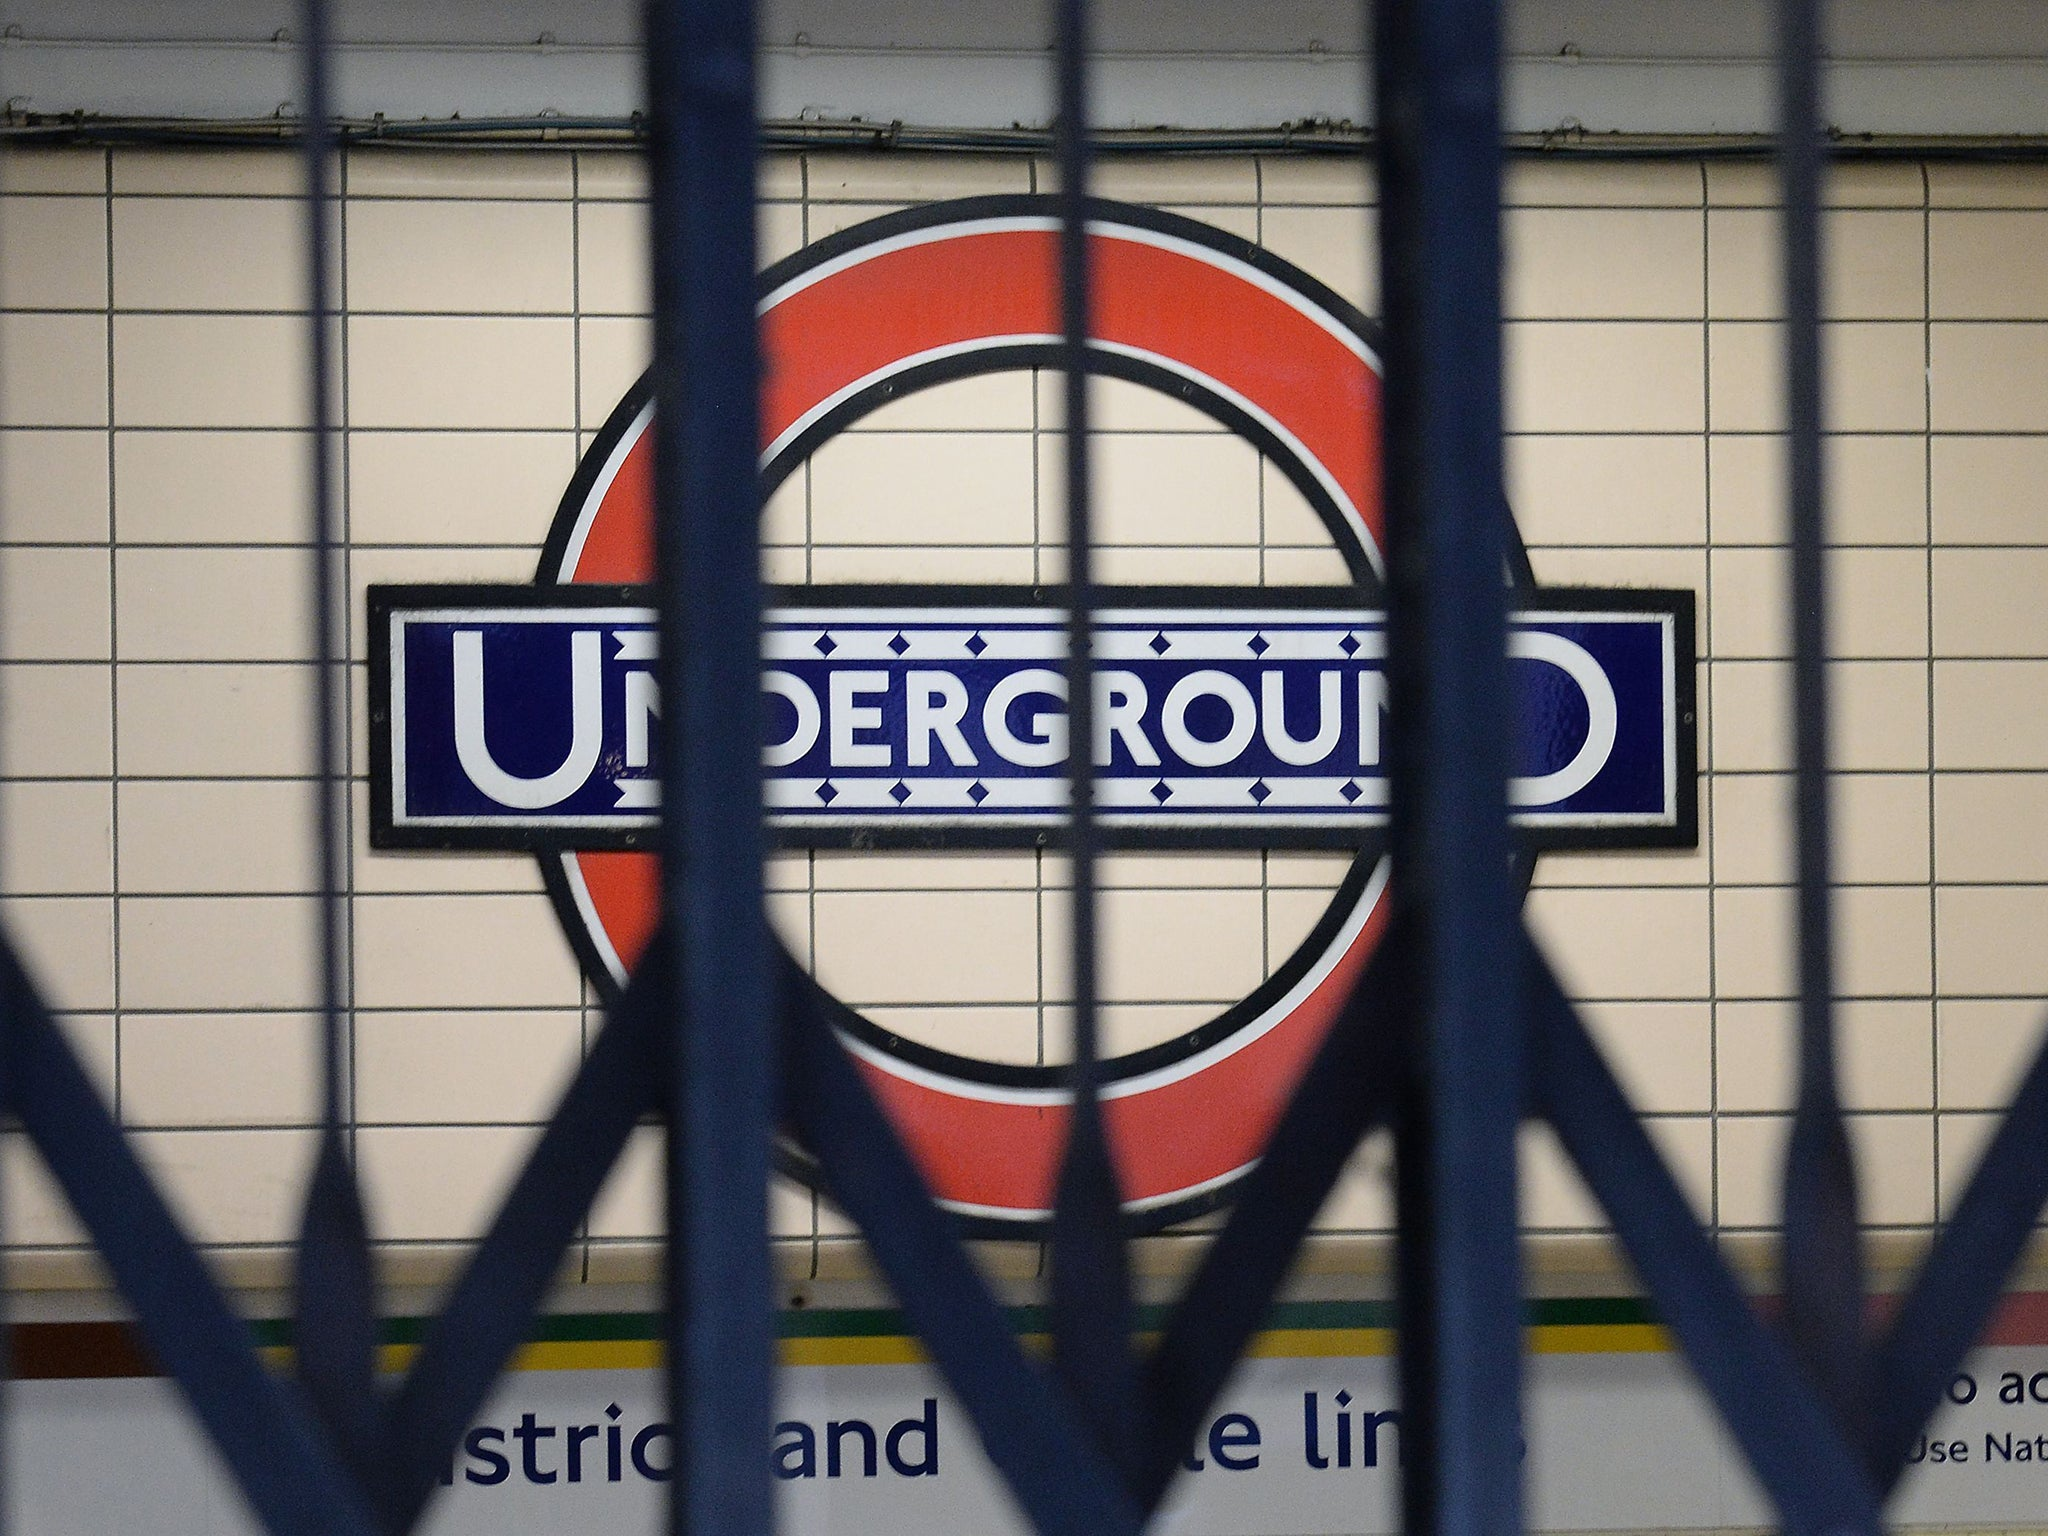 Thursday's London Tube strike is called off